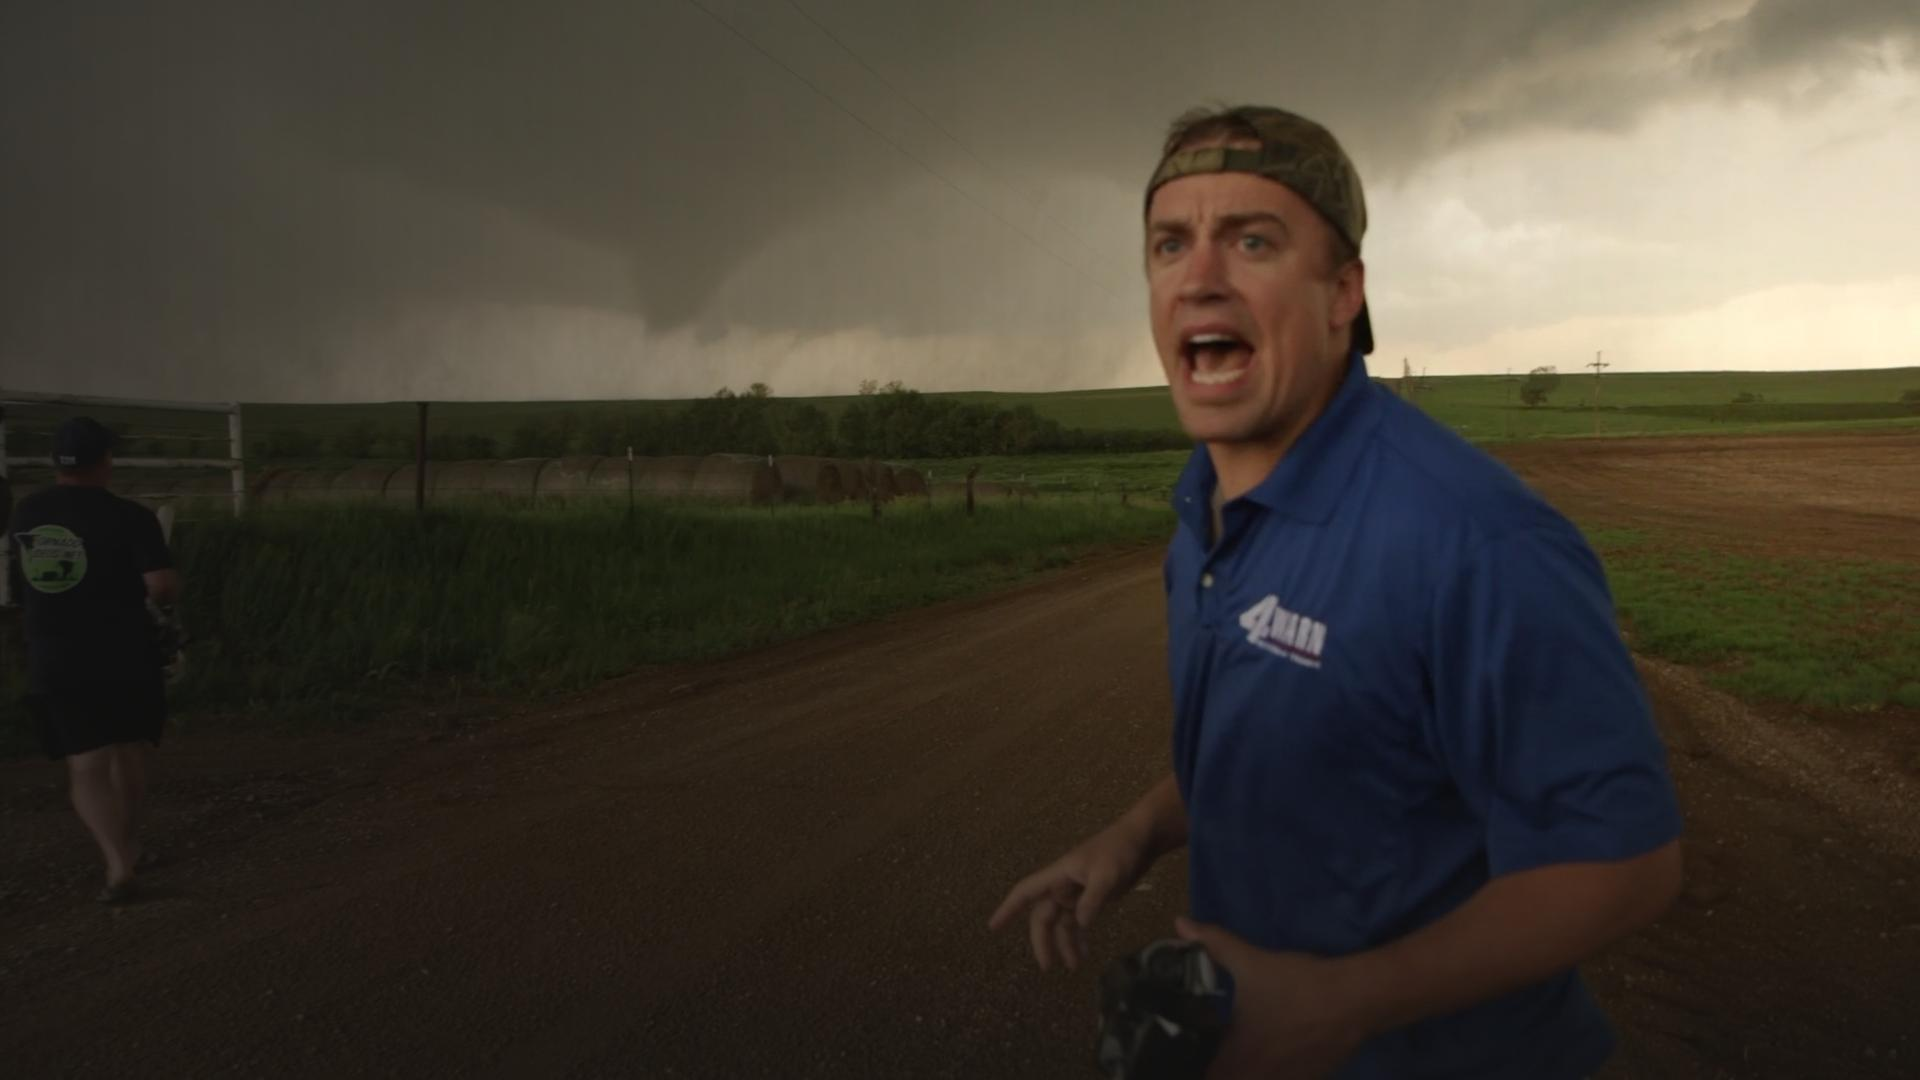 A tornado chaser yells at his team as giant tornado cell approaches